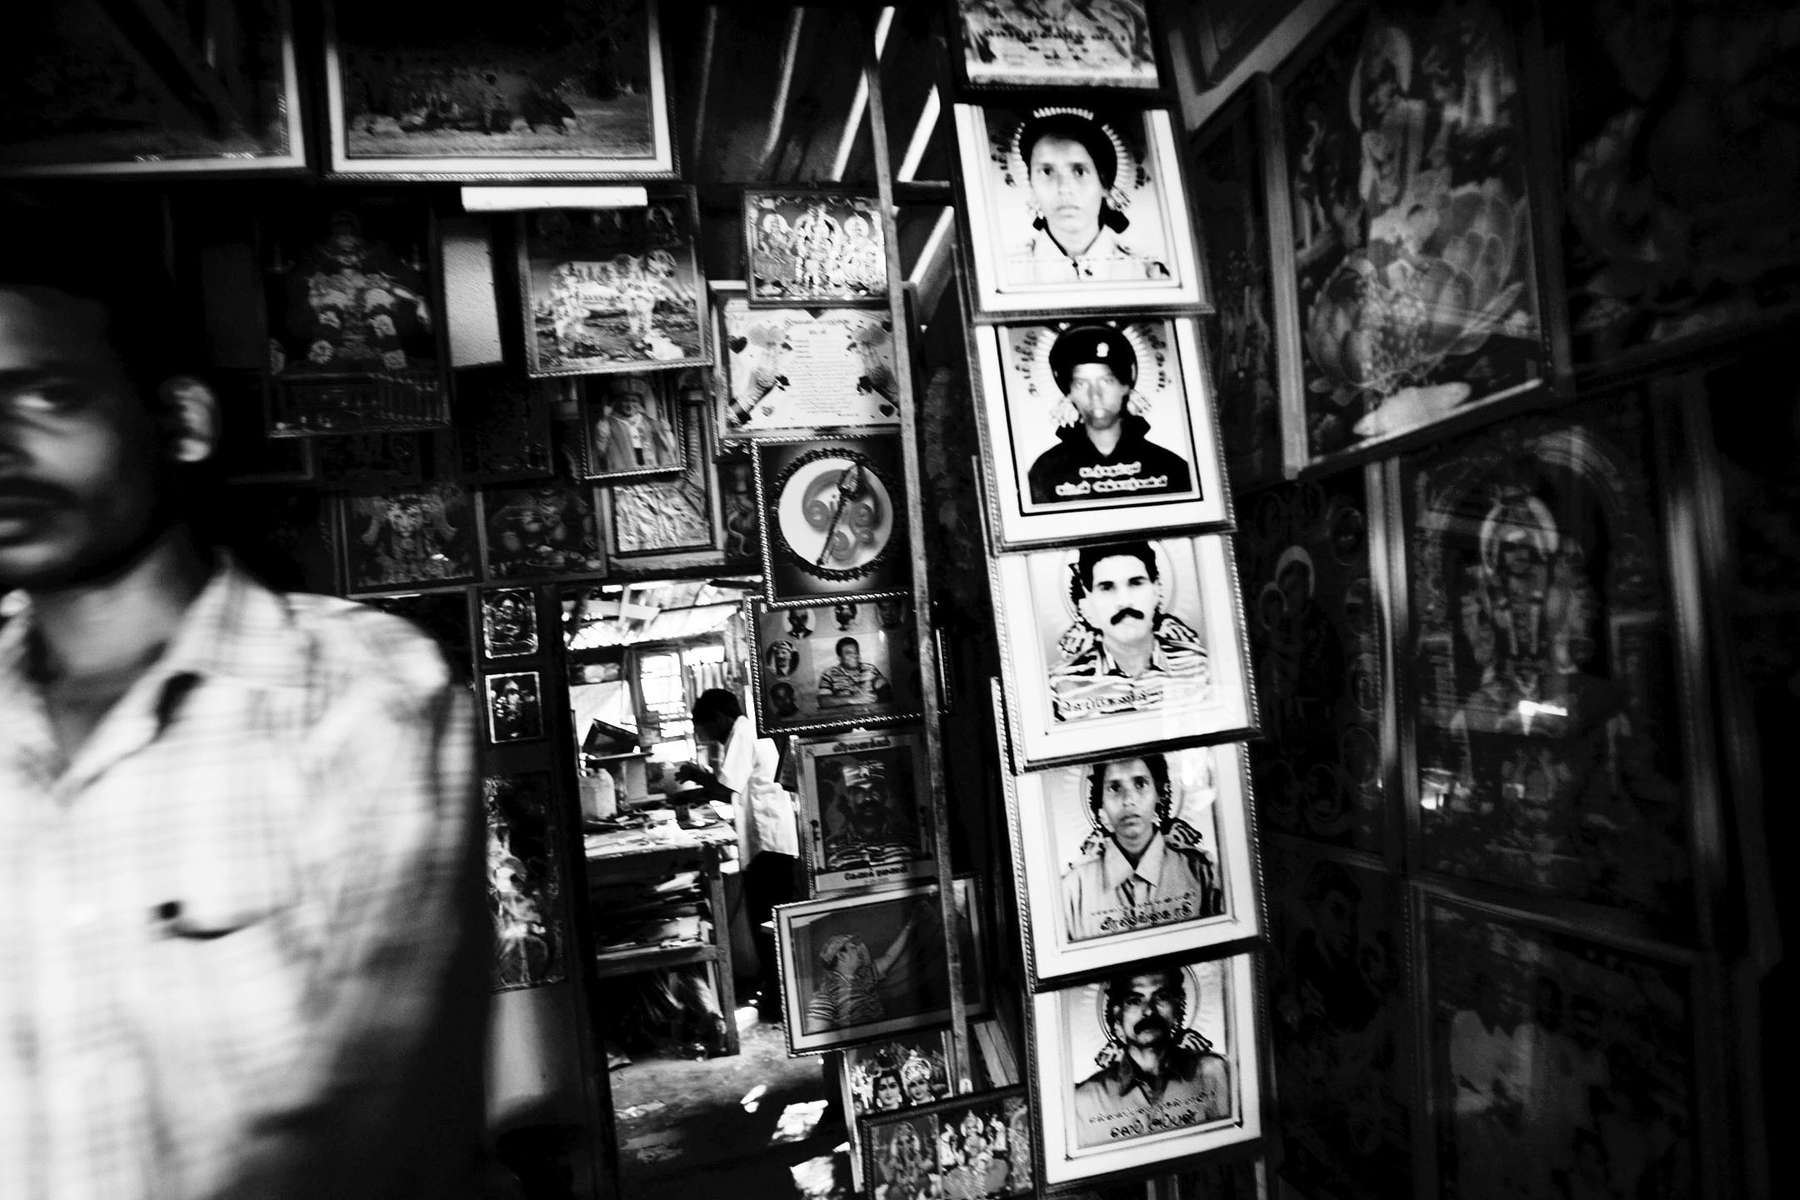 At a religious poster shop in Kilinochchi, the most stronghold of LTTE, the photos of martyrs, or suicide bombers, are also displayed. Sri Lanka, June 2006.